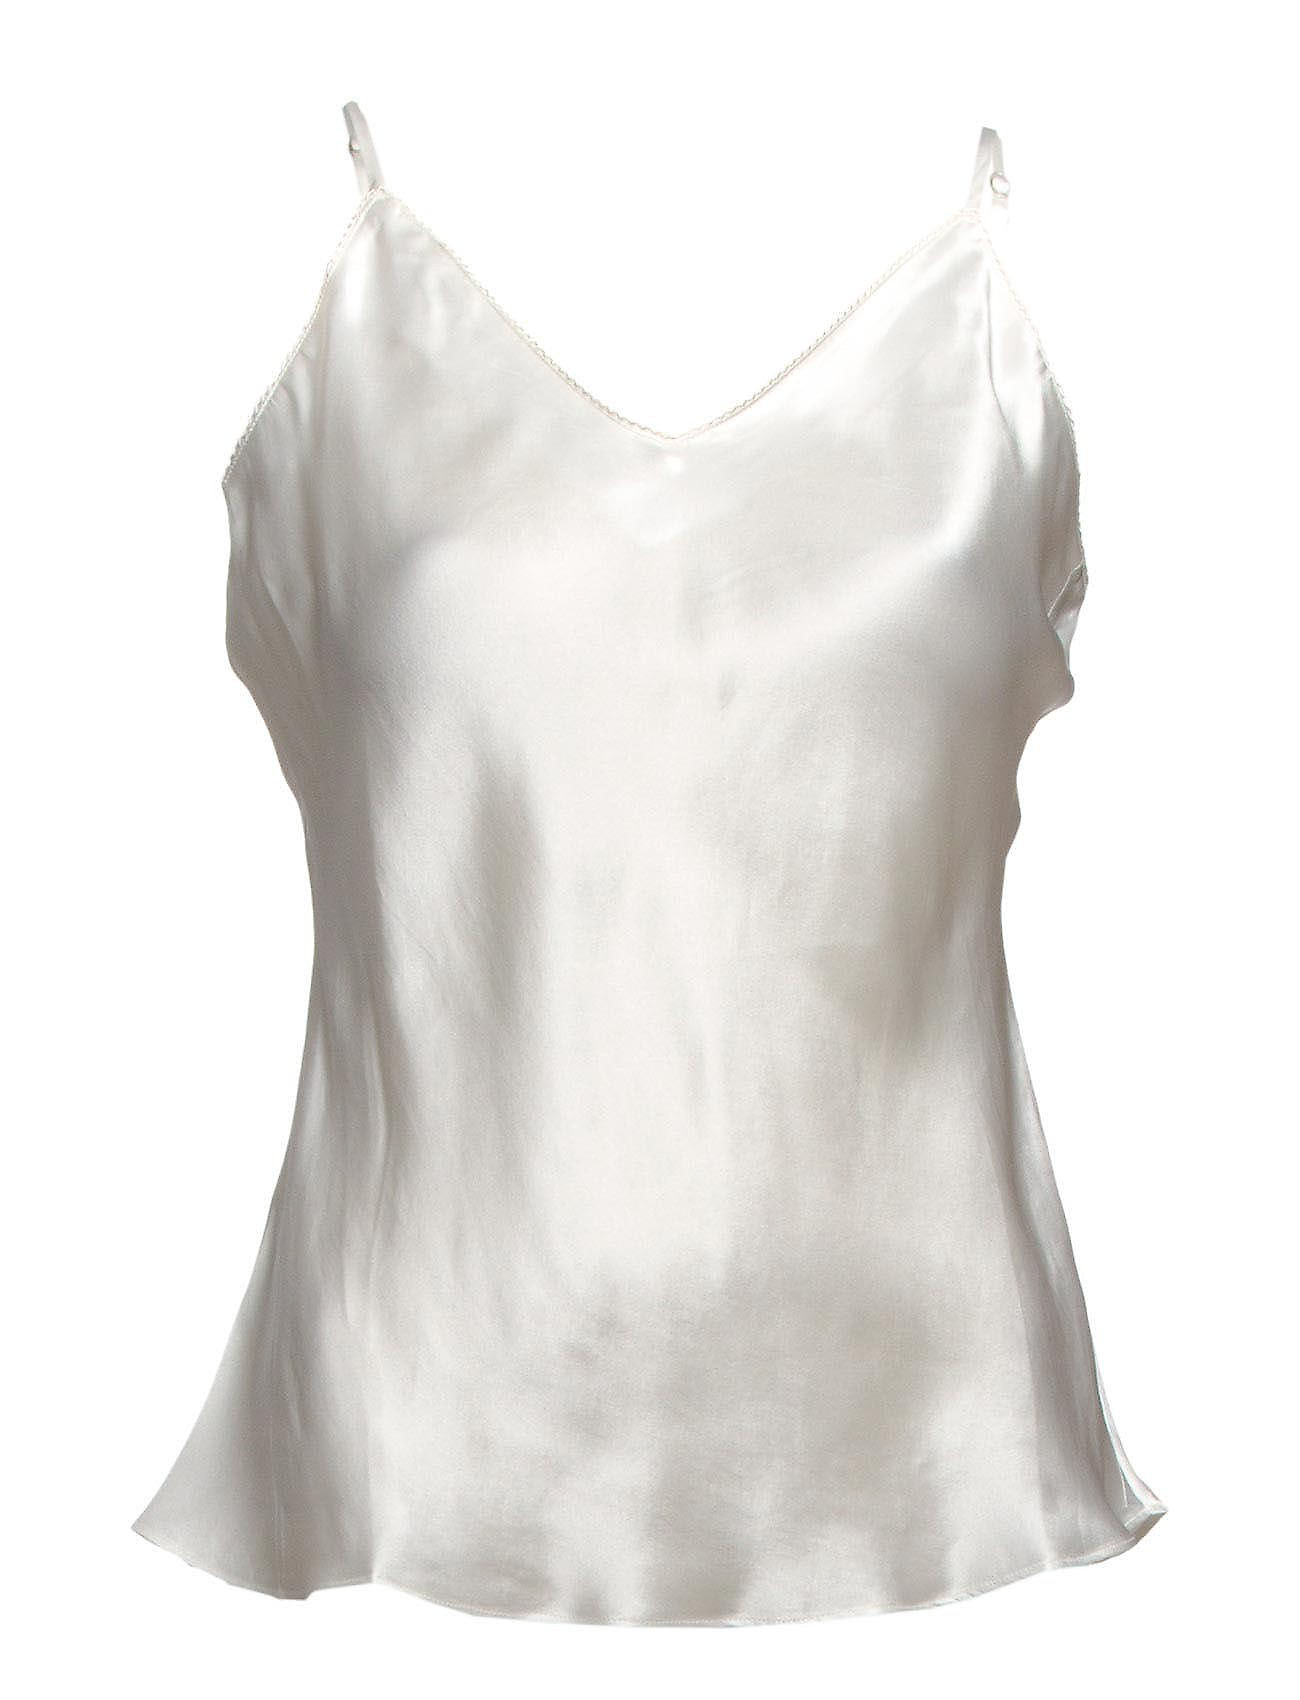 Lady Avenue Camisole - OFF-WHITE